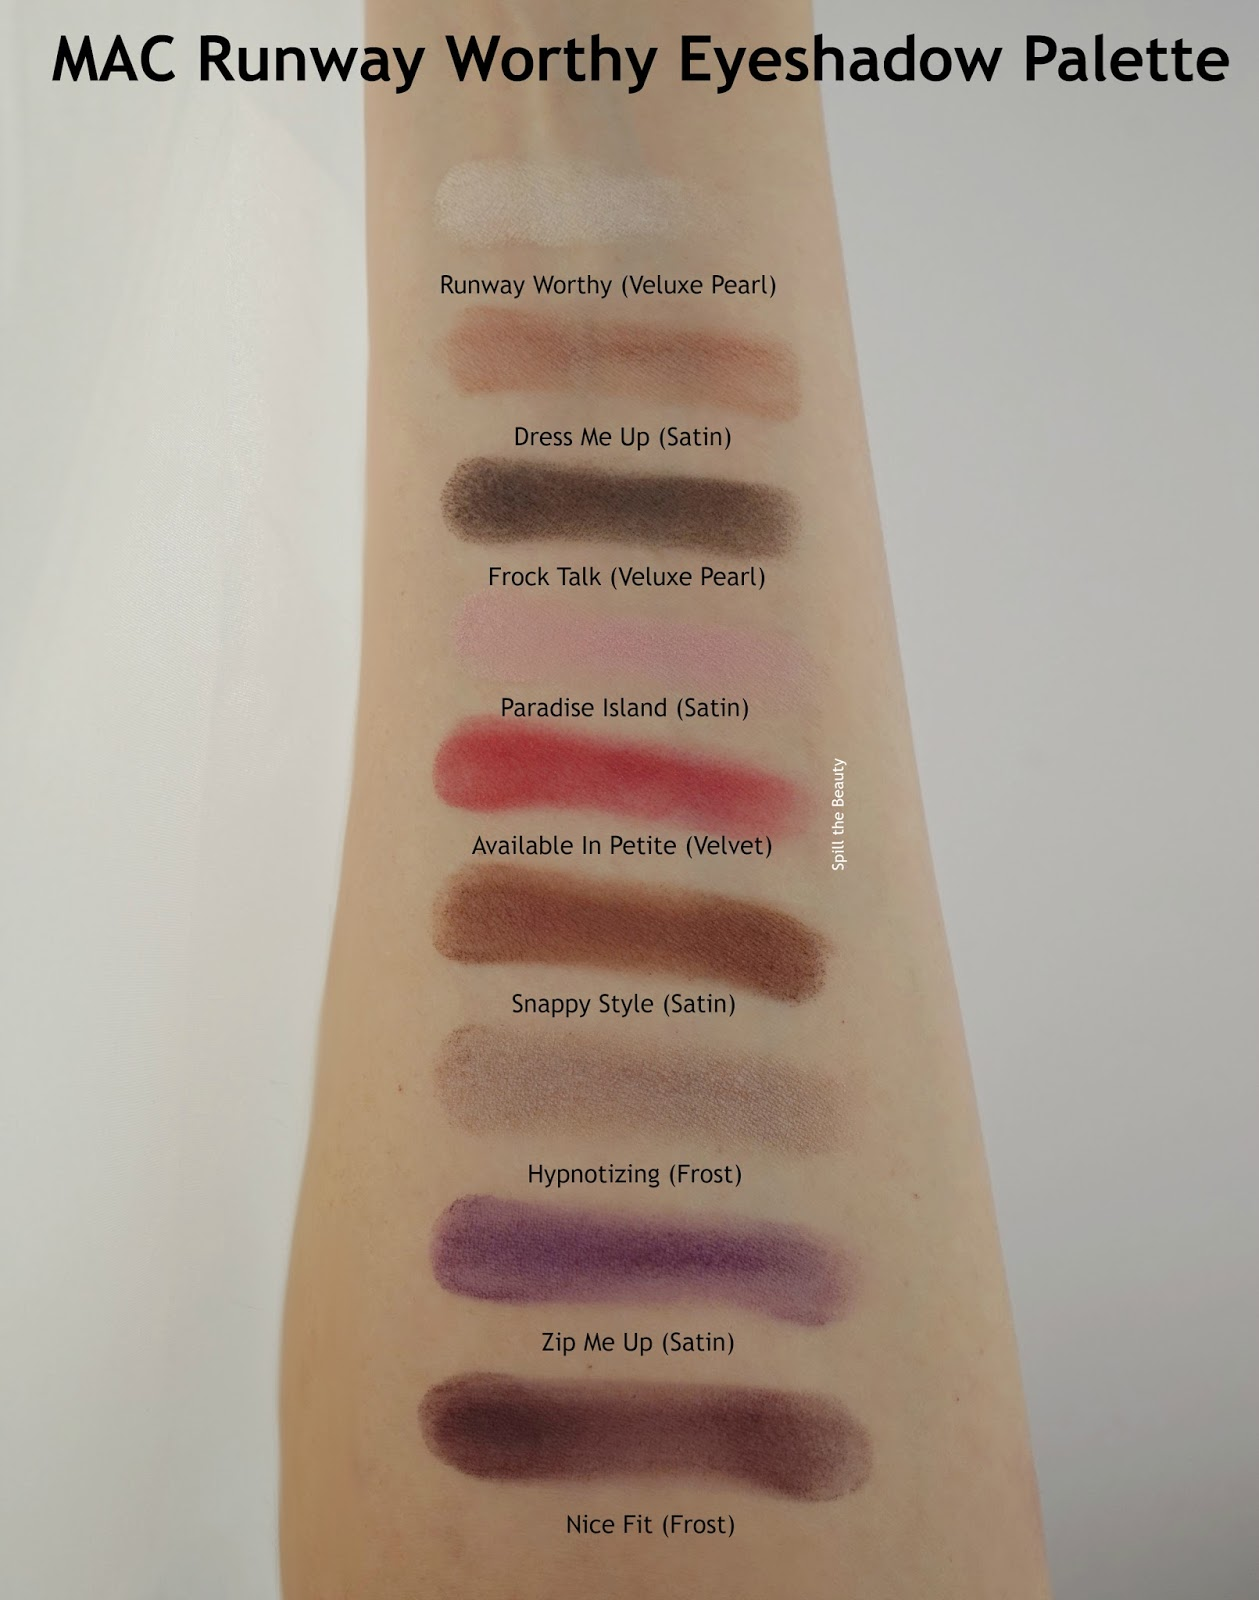 MAC Runway Worthy Eyeshadow Palette Review Swatches